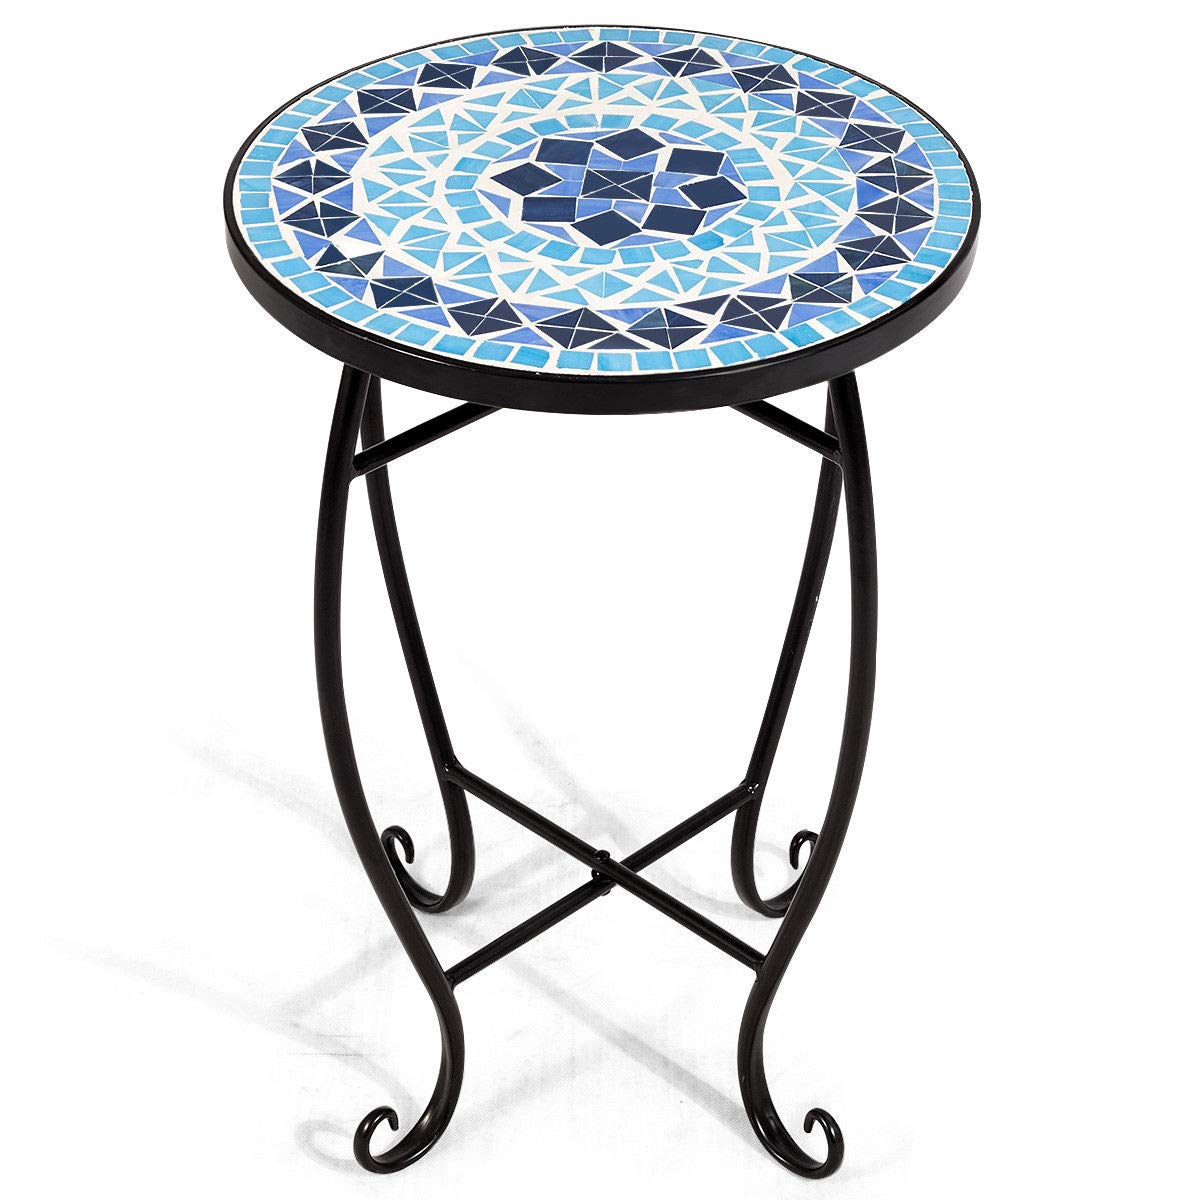 "NanaPluz 21"" H Cobalt Blue Round Plant Stand Steel Scheme Garden Decor Display Accent Table Curved Legs Mosaic Inlay Top with Ebook"